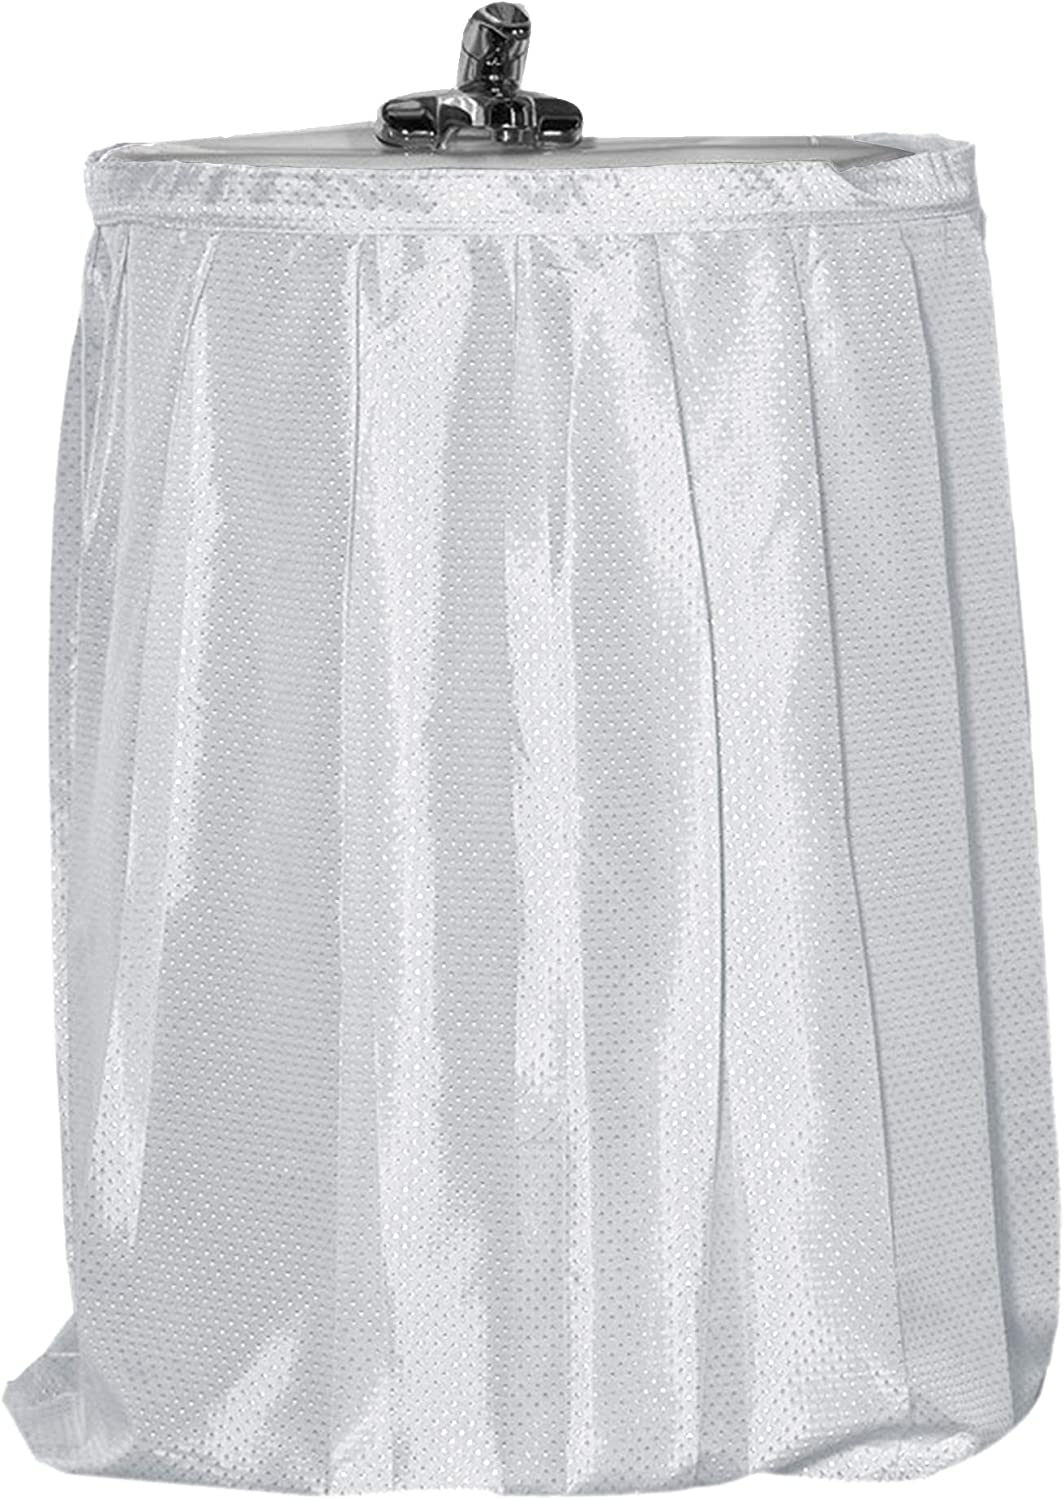 Carnation Home Fashions Hang Ease C Type Plastic Shower Curtain Hooks in Linen Sink Skirt, Grey